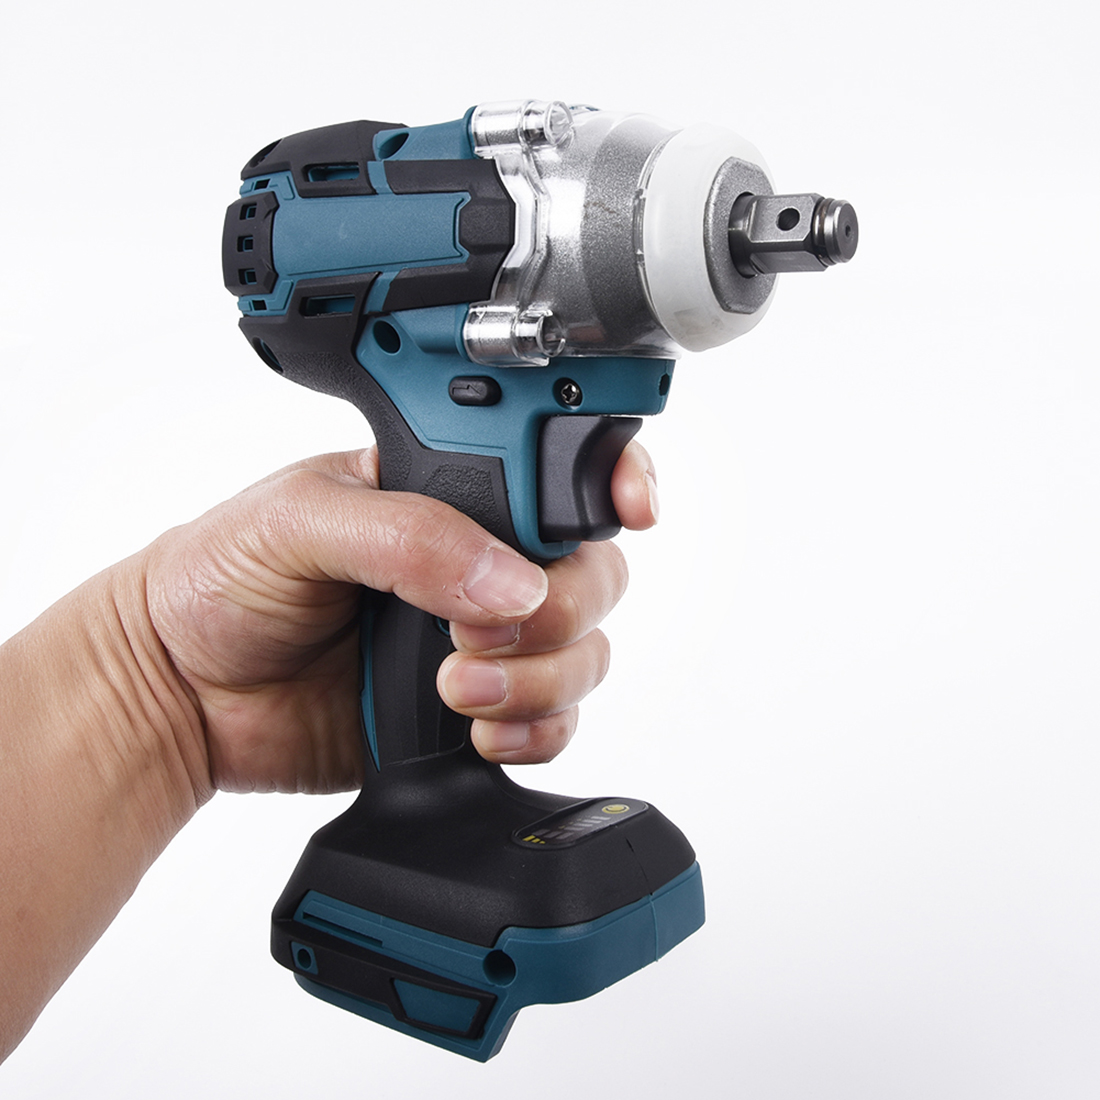 18V 1/2inch 320Nm Brushless Replace Impact Wrench Body  No Battery Adapted Torque No Charger&battery